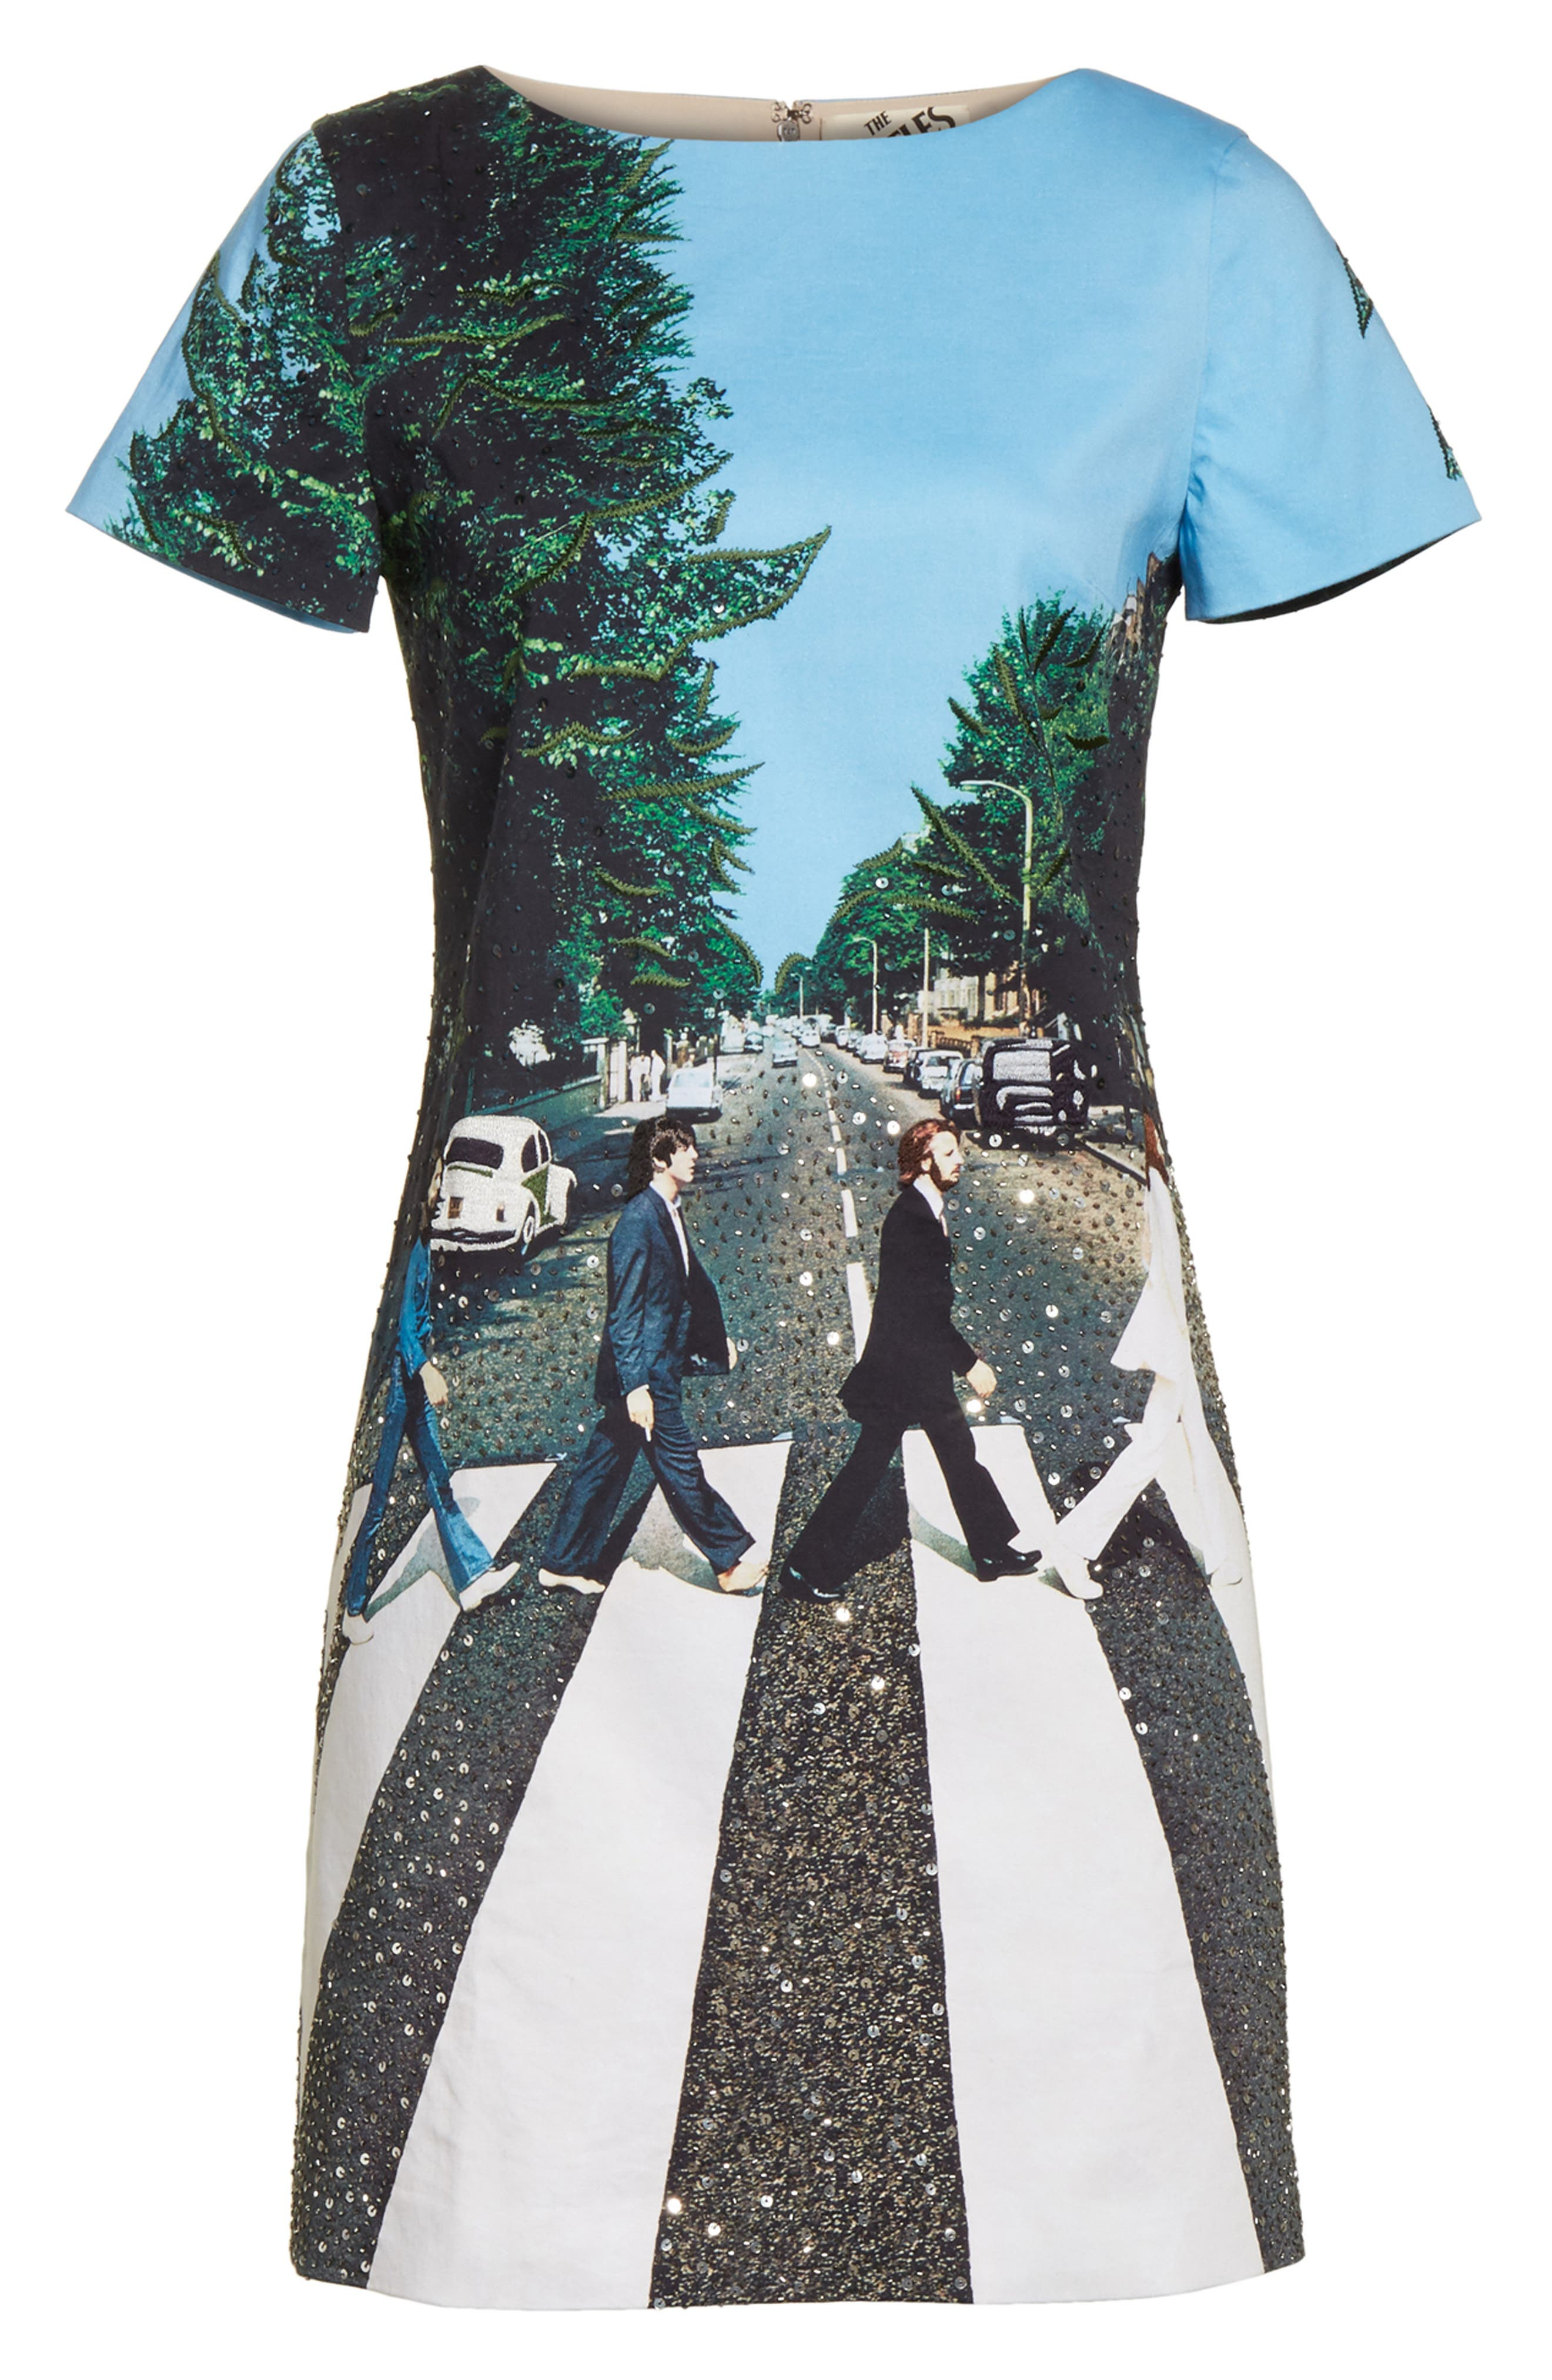 ALICE + OLIVIA,                             AO x The Beatles Sequined Shift Dress,                             Alternate thumbnail 6, color,                             473